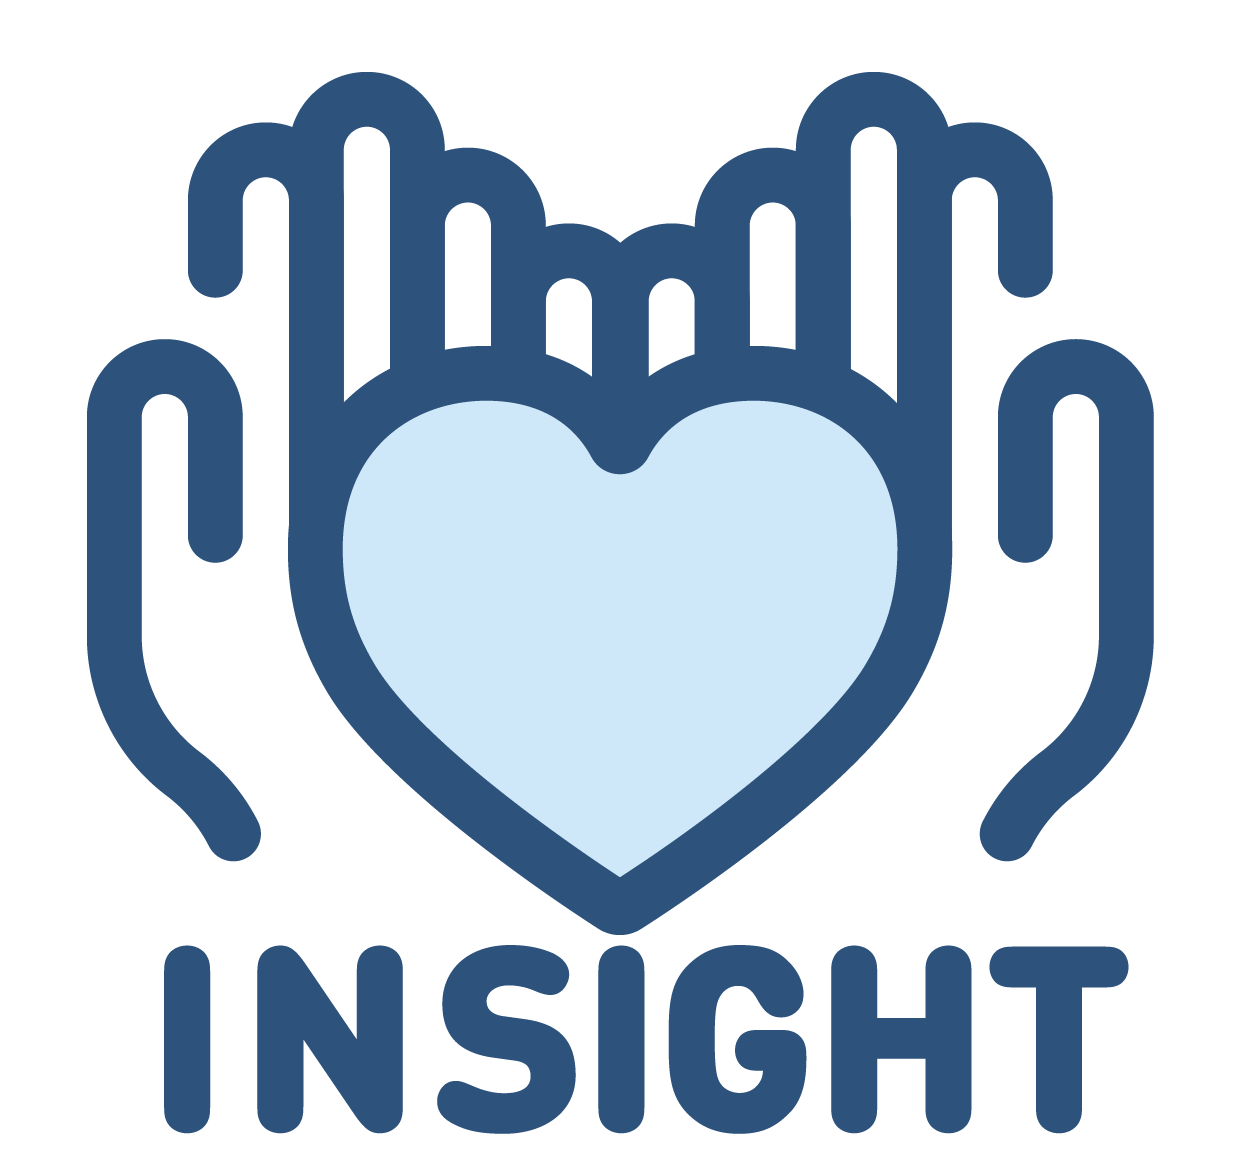 Heart of Insight Community